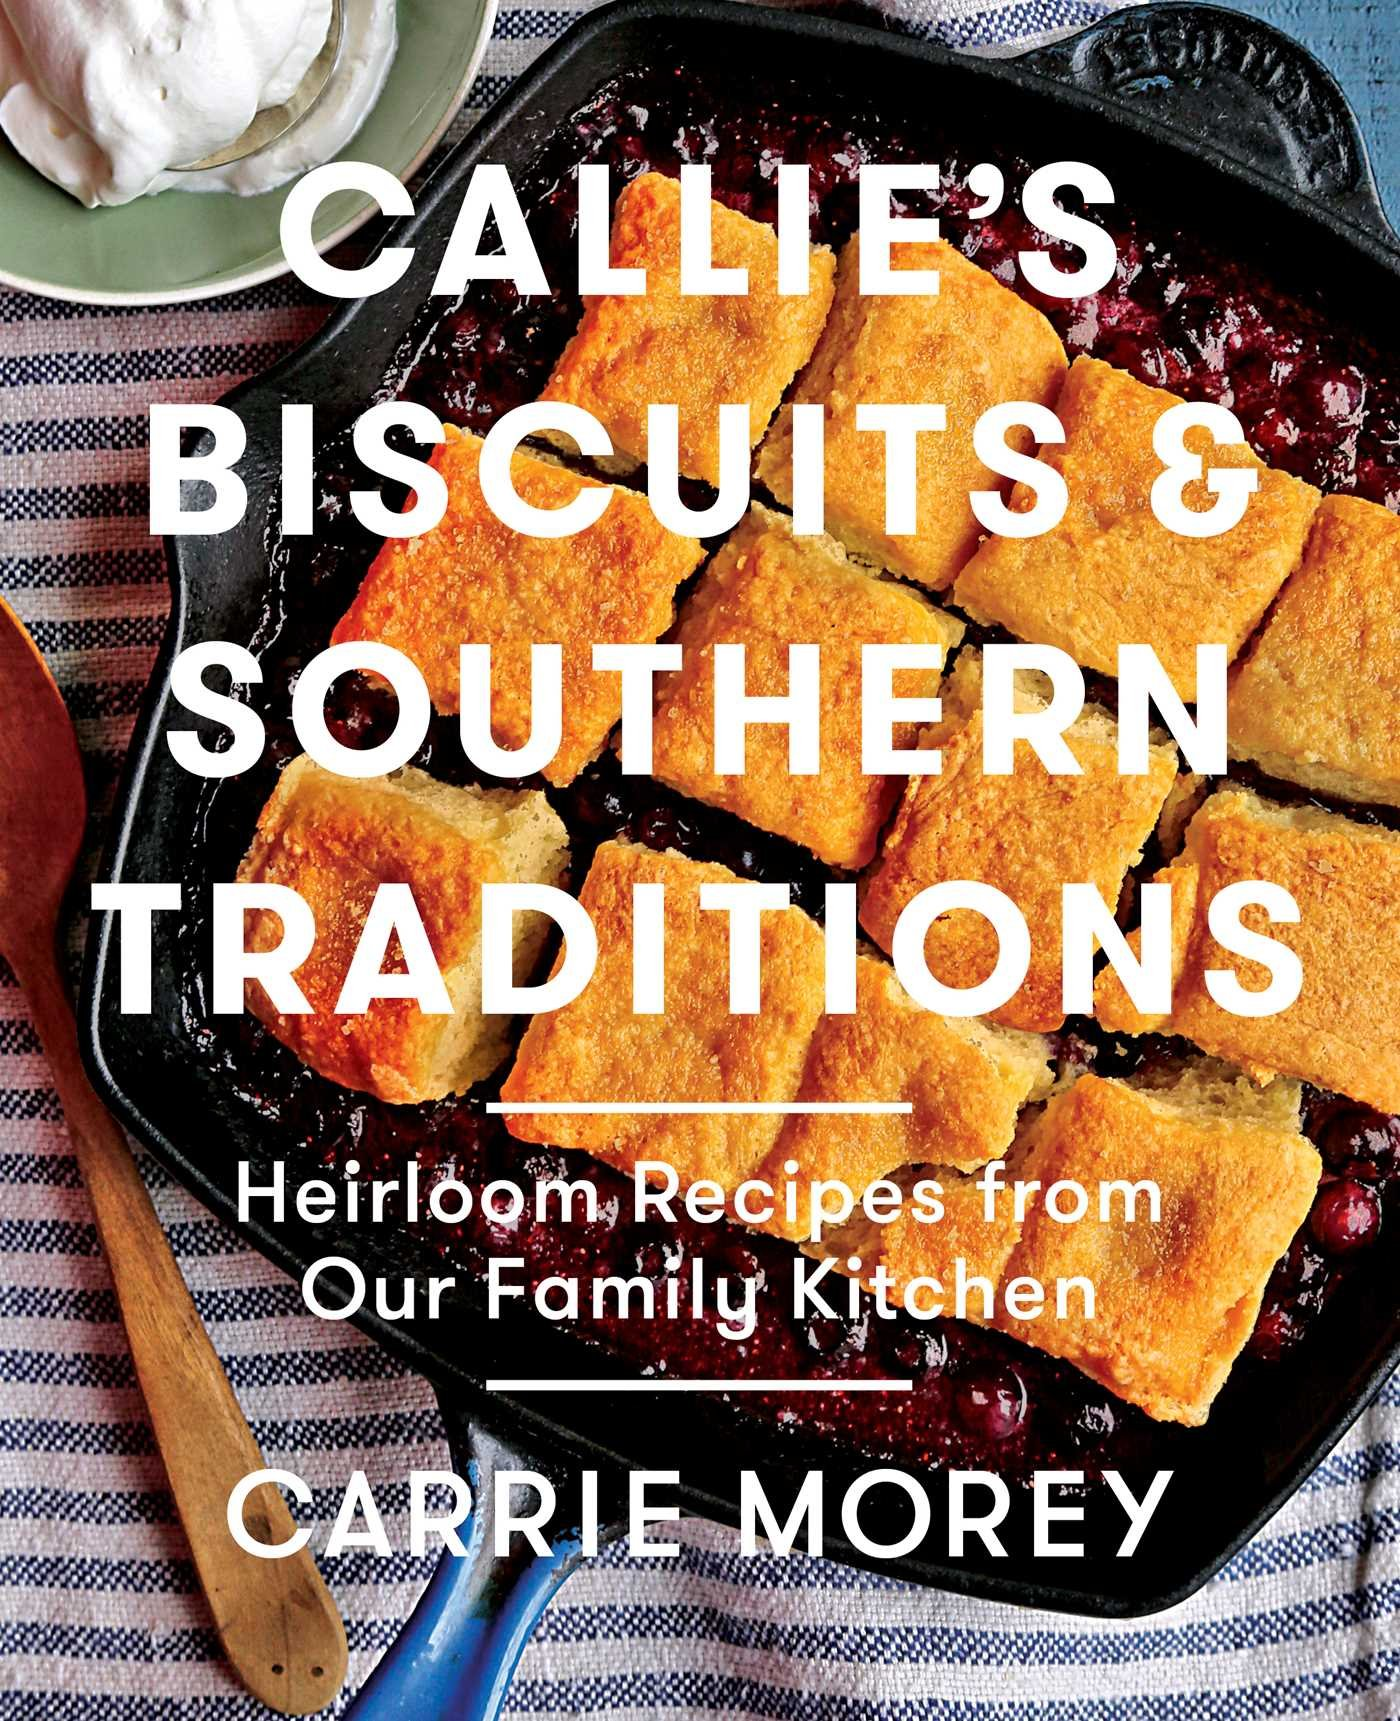 Image OfCallie's Biscuits And Southern Traditions: Heirloom Recipes From Our Family Kitchen